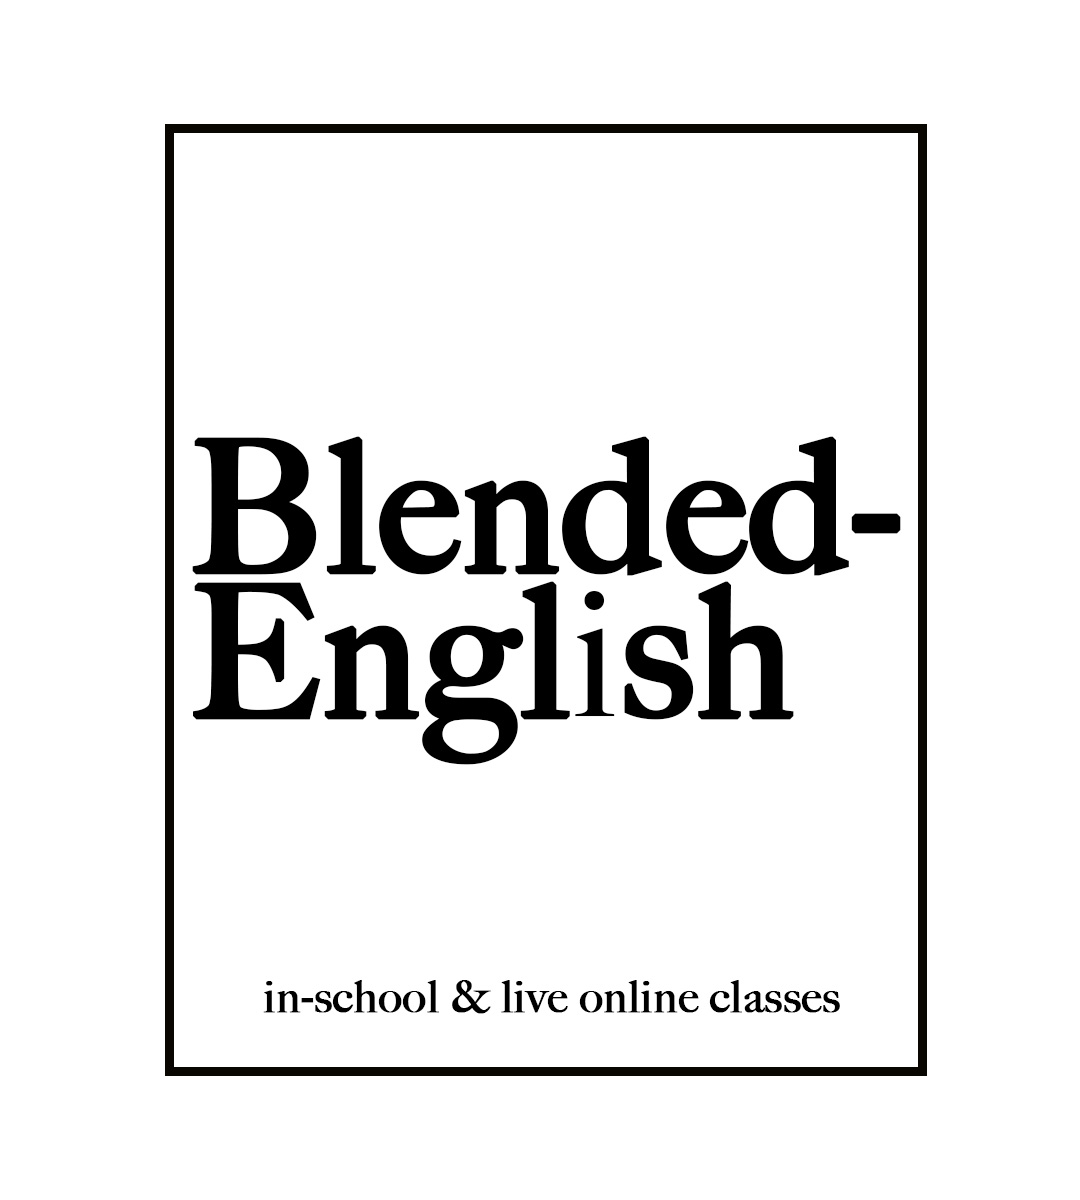 blended english white